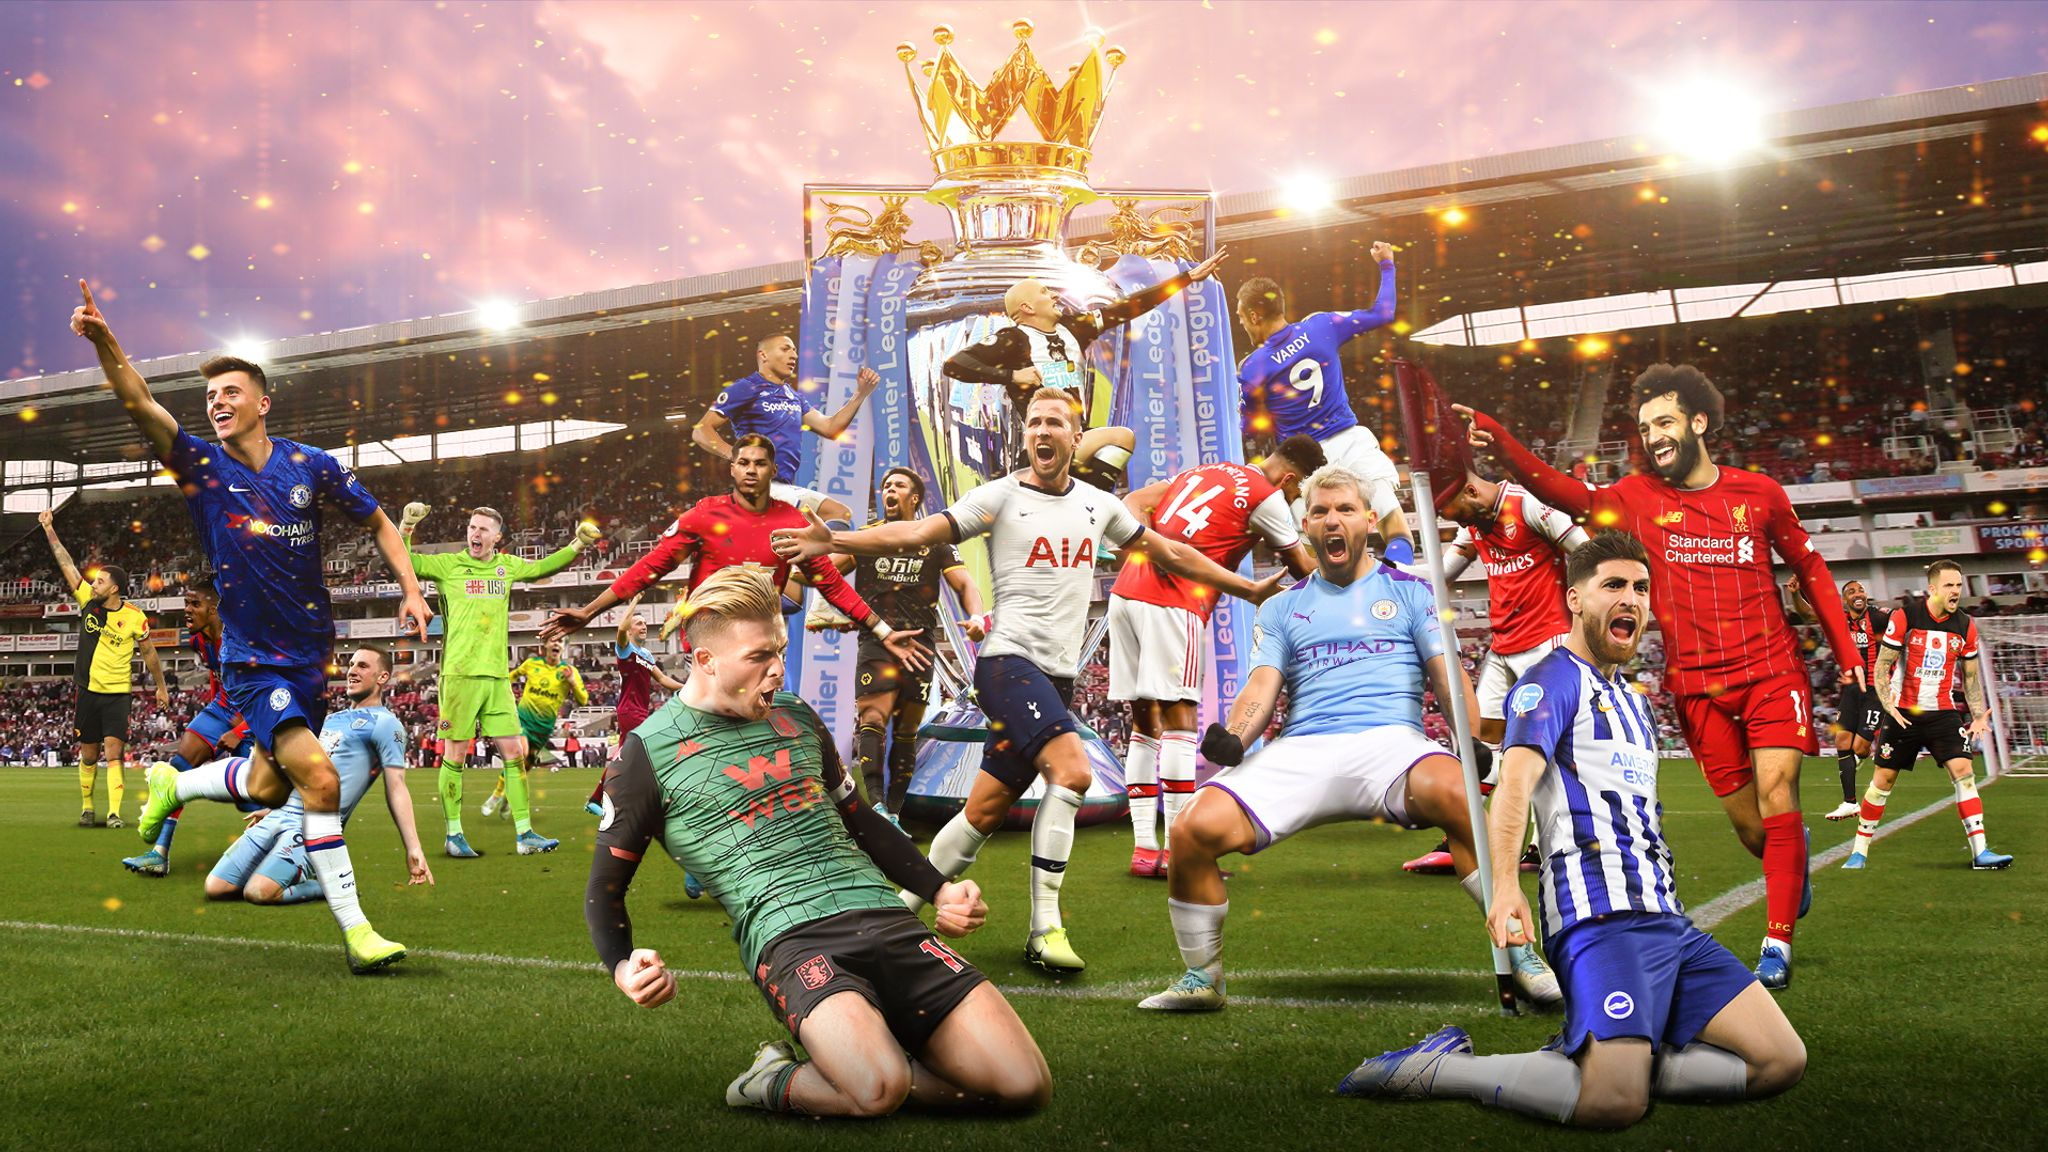 Premier League clubs reject 'Project Big Picture' at emergency meeting